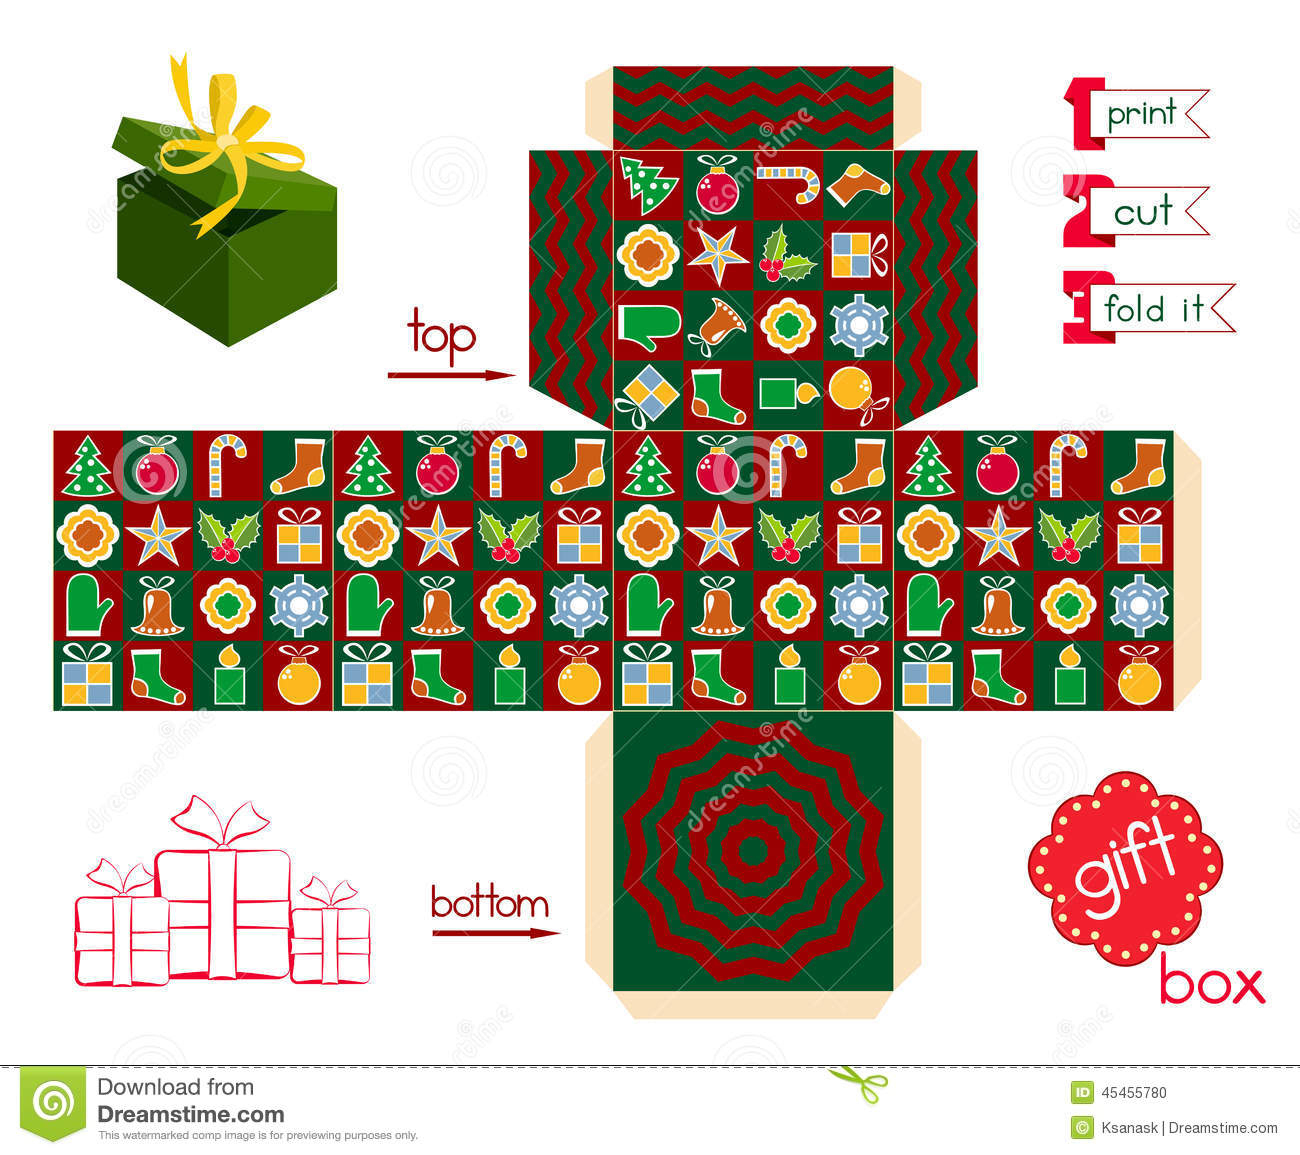 Christmas Gift Box Template Free Printable – Festival Collections - Printable Box Templates Free Download